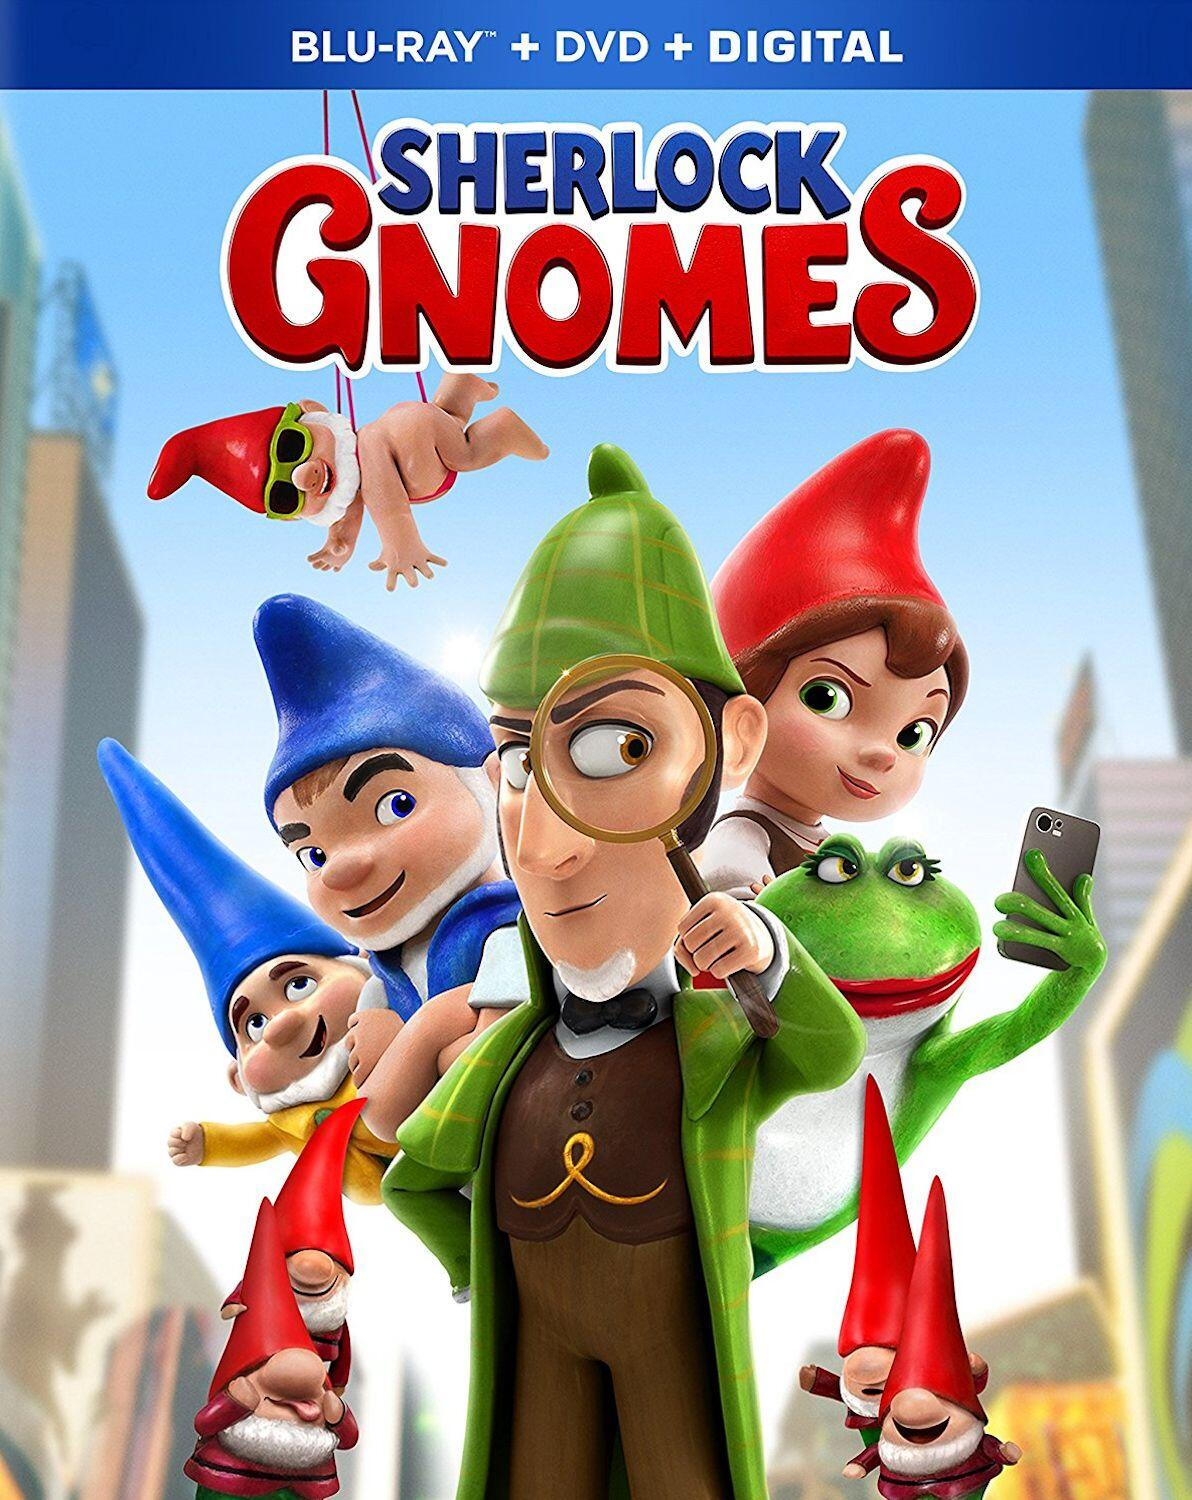 Sherlock Gnomes: Celebrate Summer with Family Movie Night